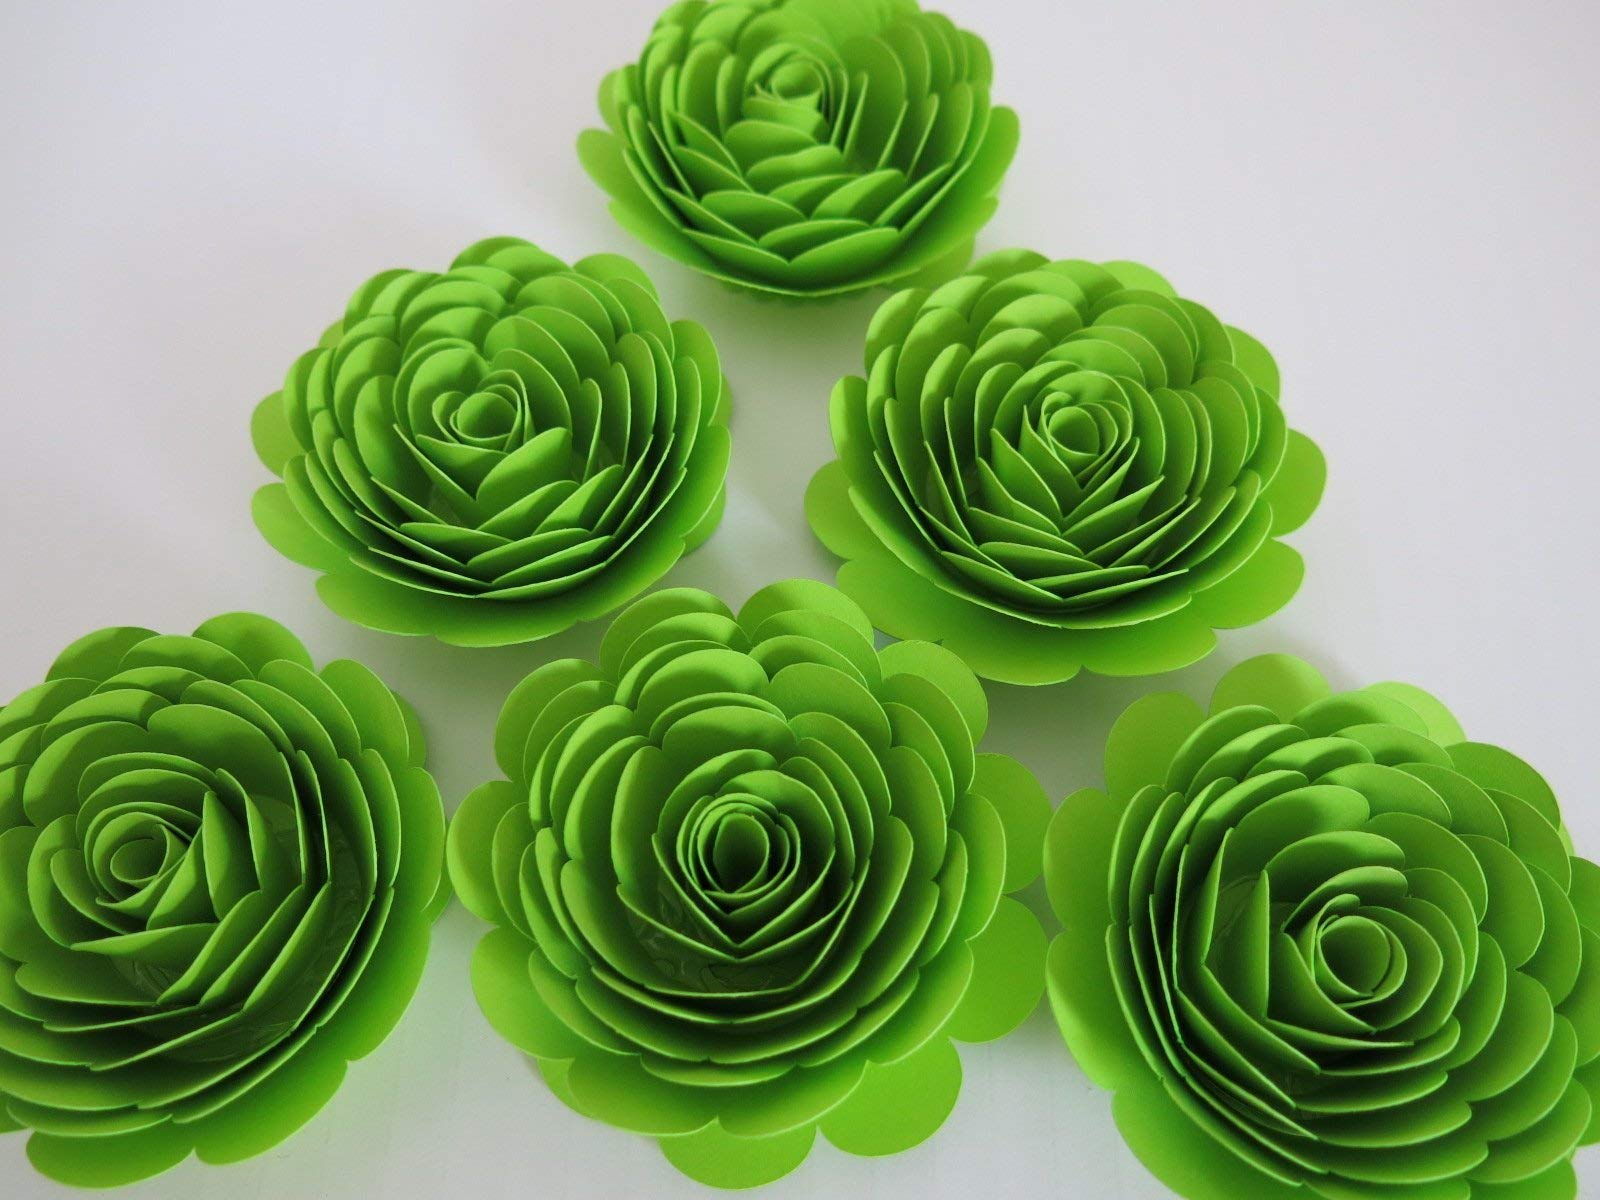 silk flower arrangements neon green paper flowers 3 inch roses set of 6 lime green skating party decorations wedding decor table centerpiece teen bedroom